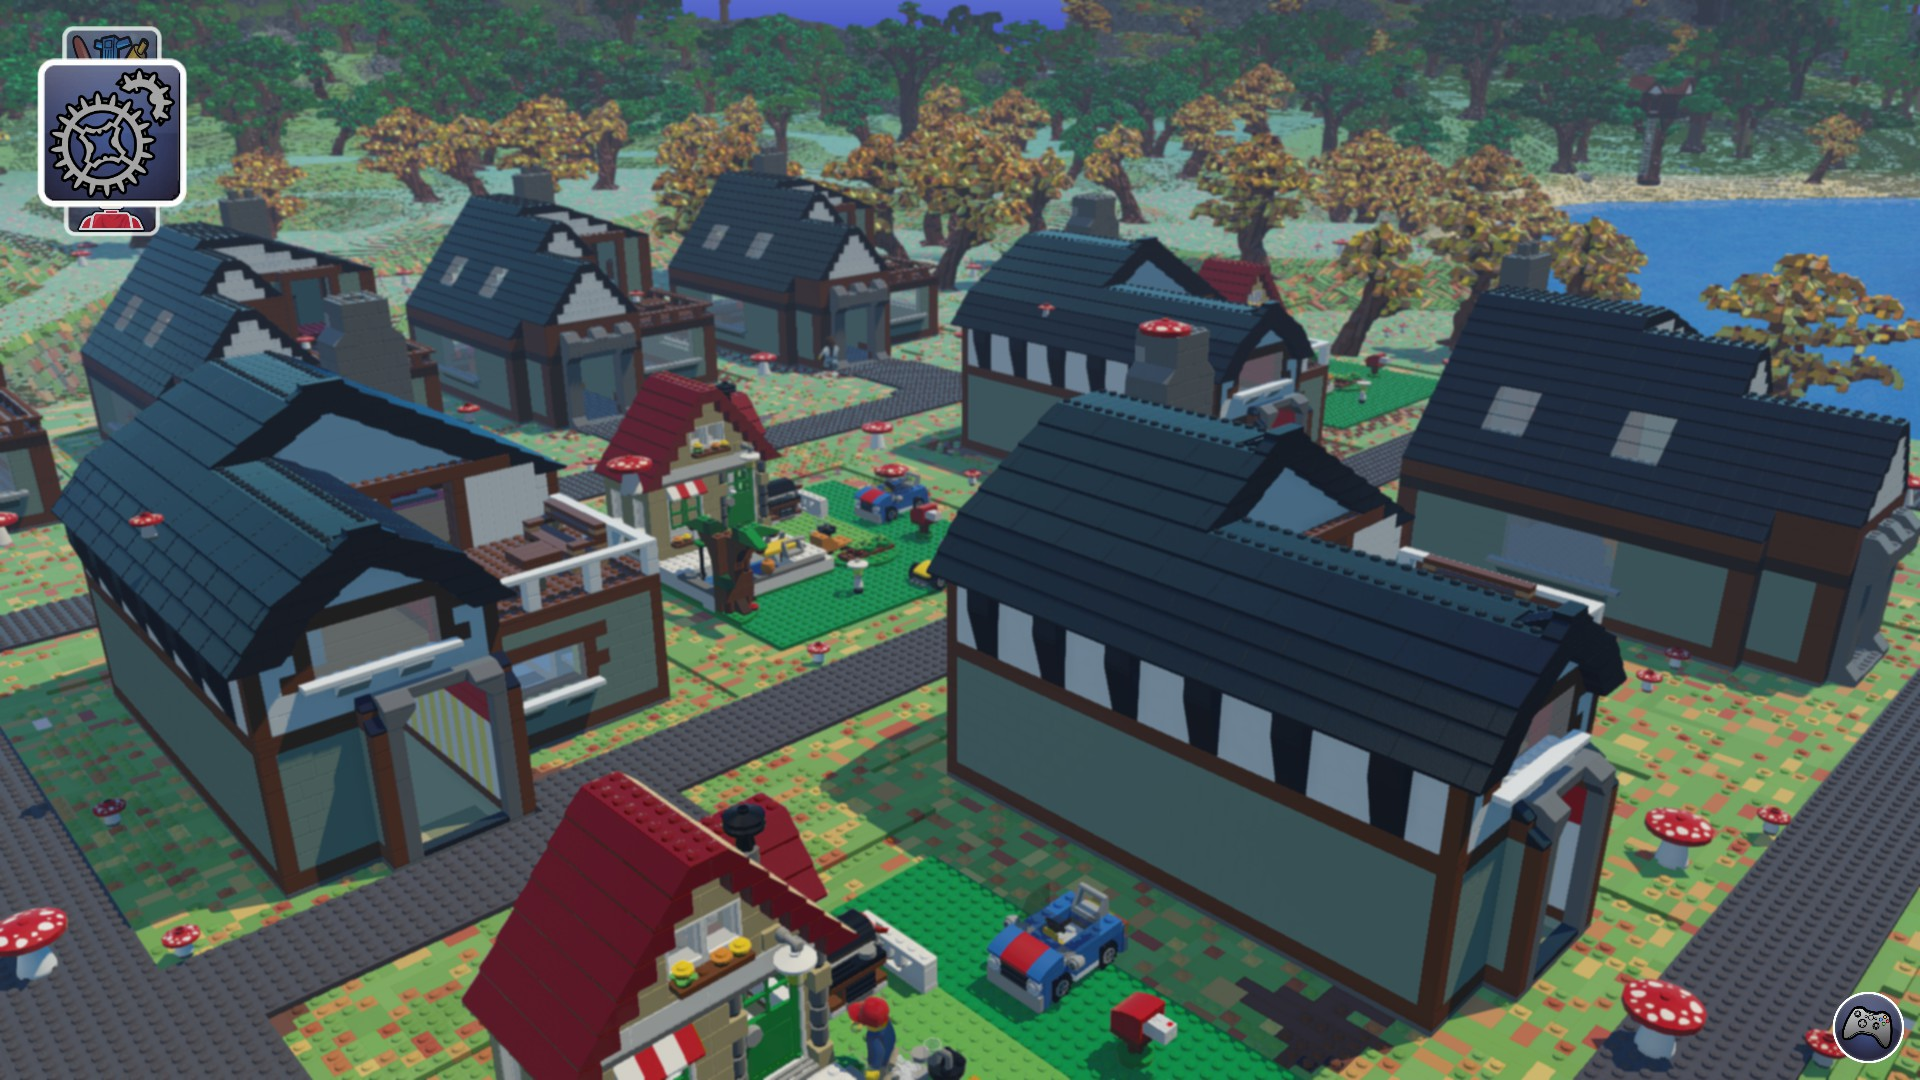 LEGO's answer to Mincraft --Introducing LEGO WORLDS, a limitless collection of procedurally generated worlds made entirely of LEGO Bricks, where players build unique environments and define their own experience.